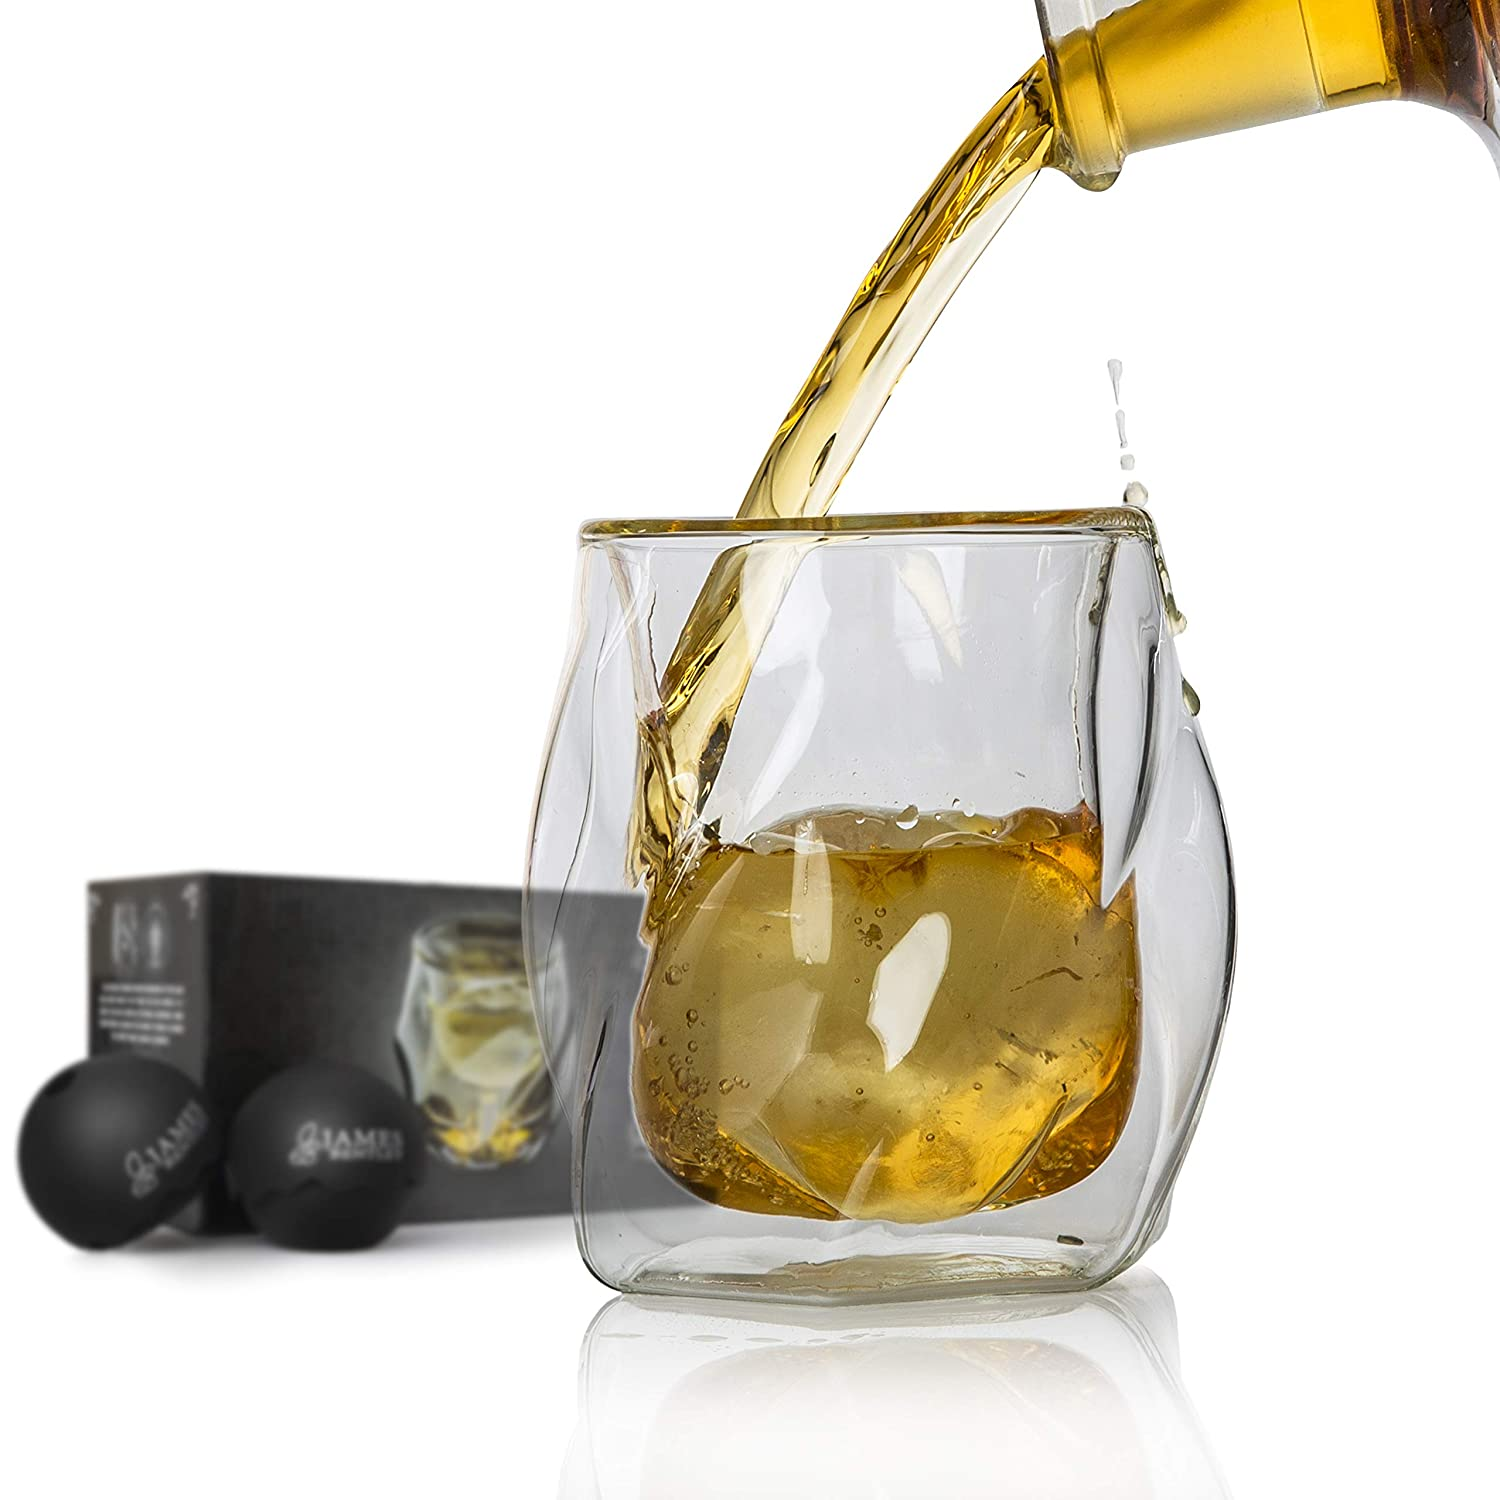 James Bentley Double Wall Whiskey Glasses set+FREE Sphere Ice Ball Mold x2 for whisky glasses set, Set of 2, Unique Tumblers for Drinking Scotch, Bourbon, Brandy, Liquor, Luxury Gift Set James Bentley Trading